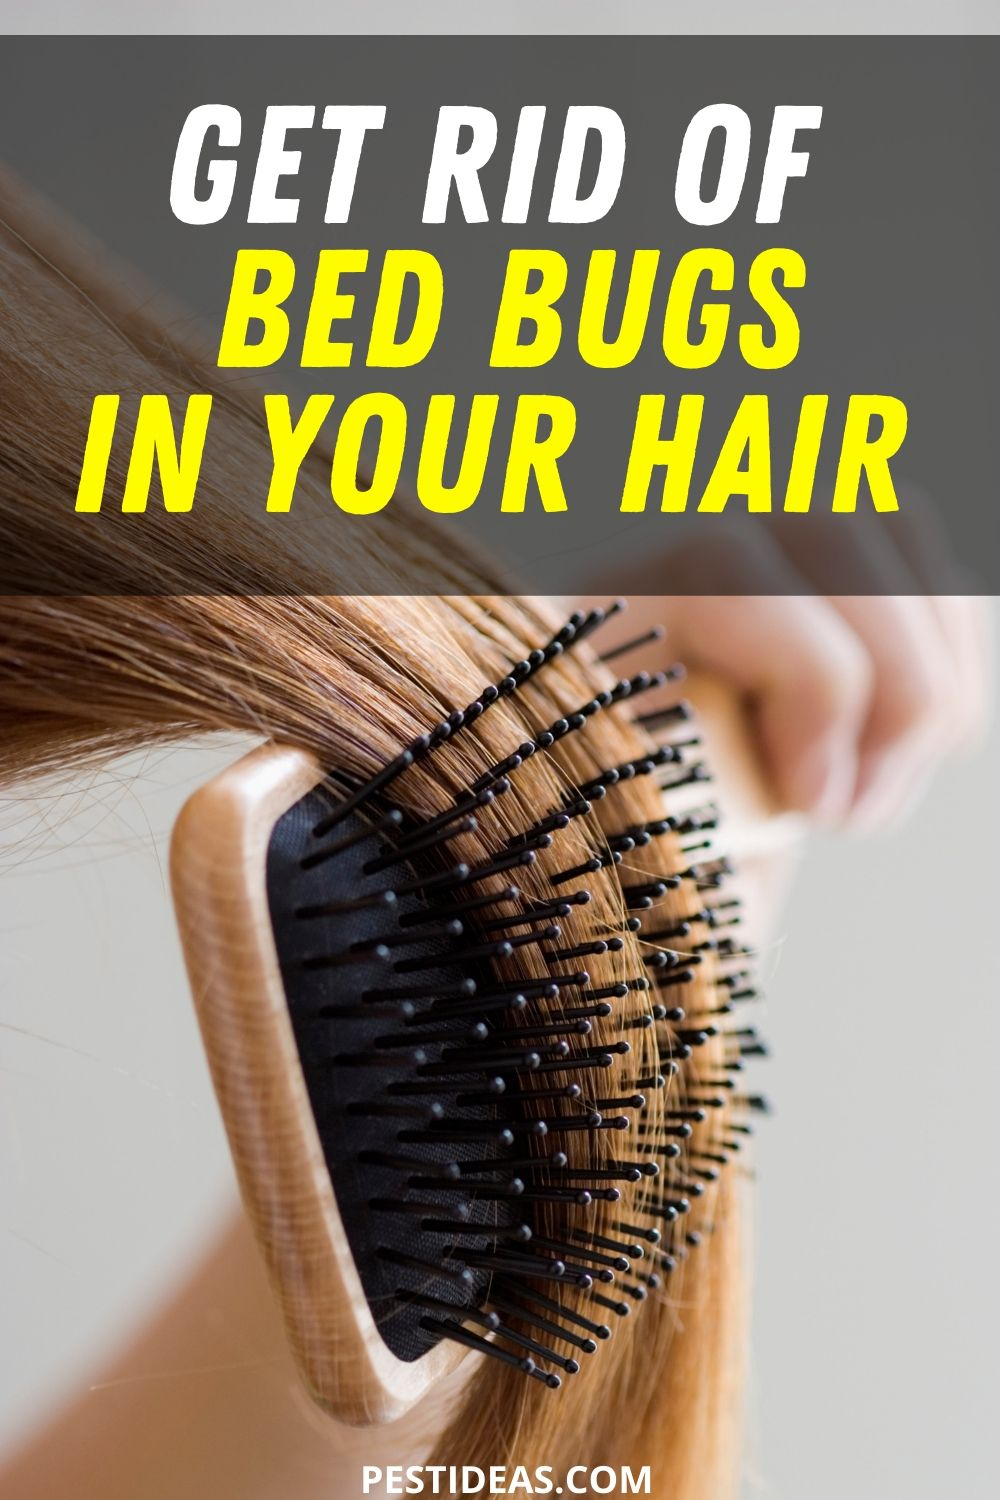 Get rid of bed bugs in your hair